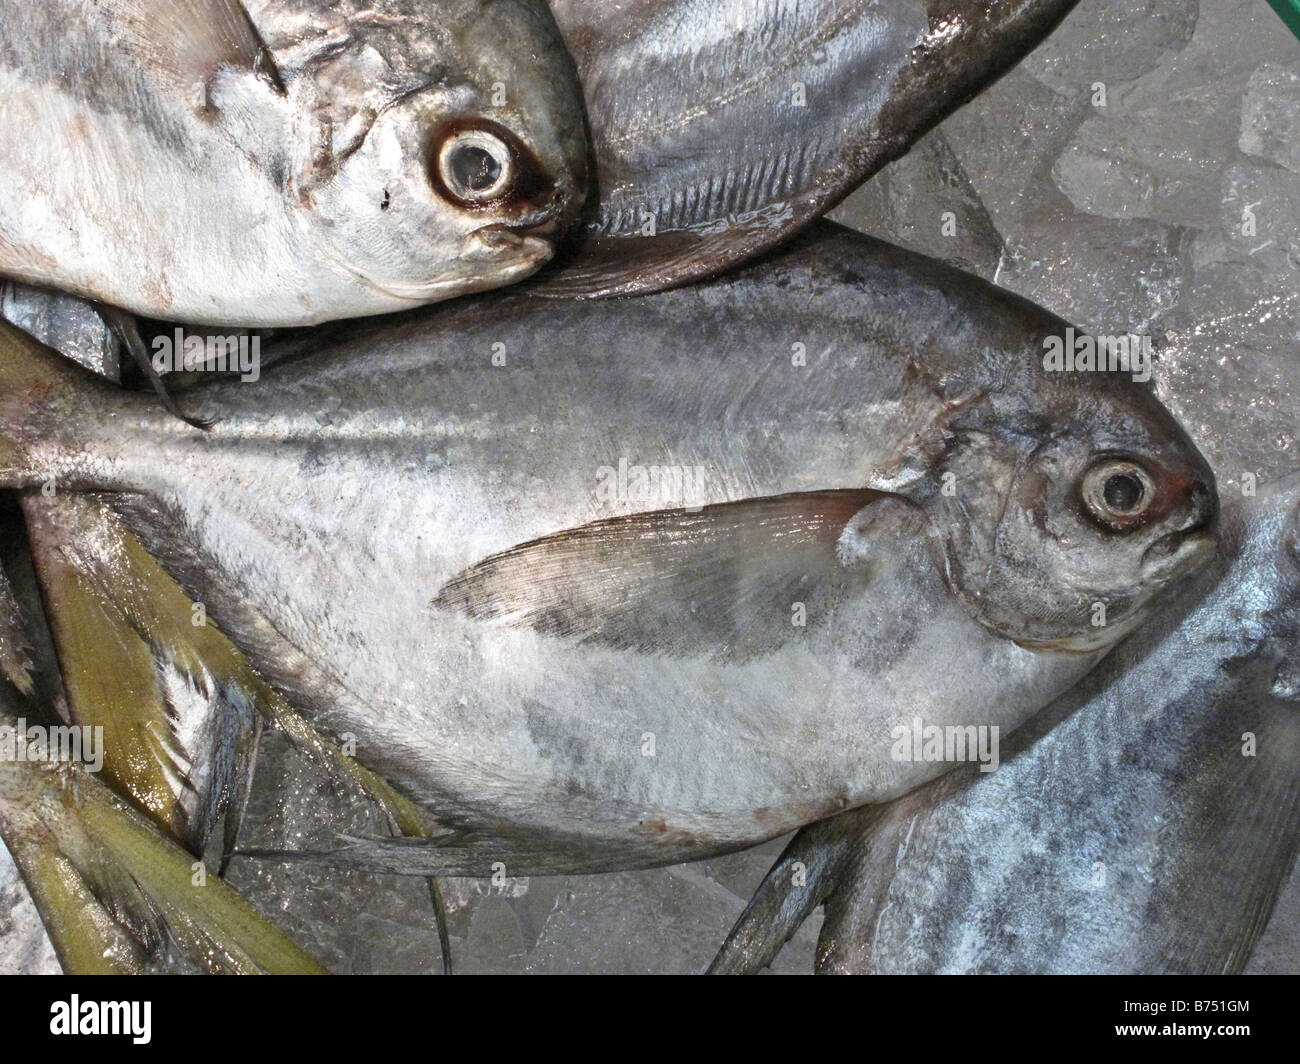 a group of Pompano fish on ice in a fishmarket display in Edmonds, WA, United States - Stock Image